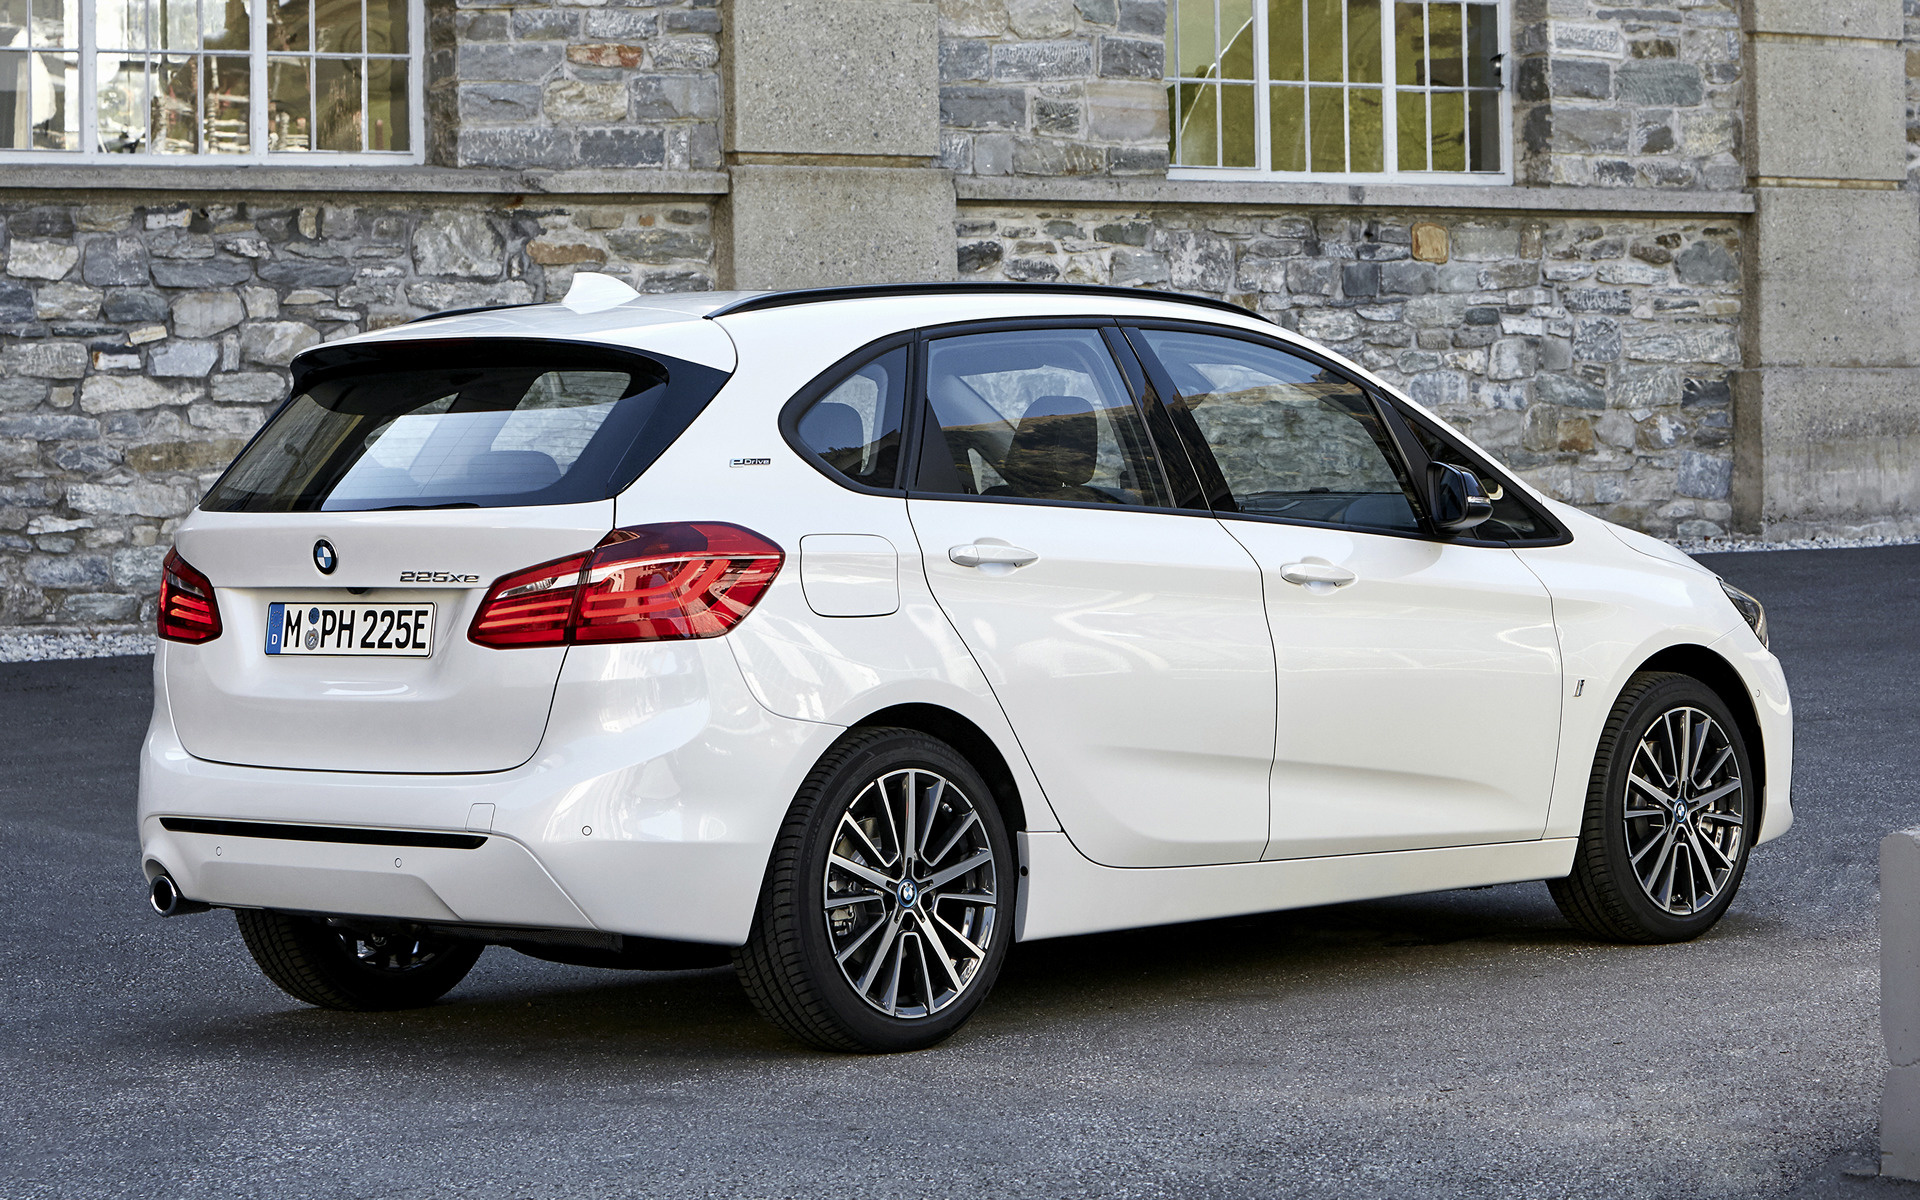 Bmw M Series >> 2018 BMW 2 Series Active Tourer Plug-In Hybrid - Wallpapers and HD Images | Car Pixel